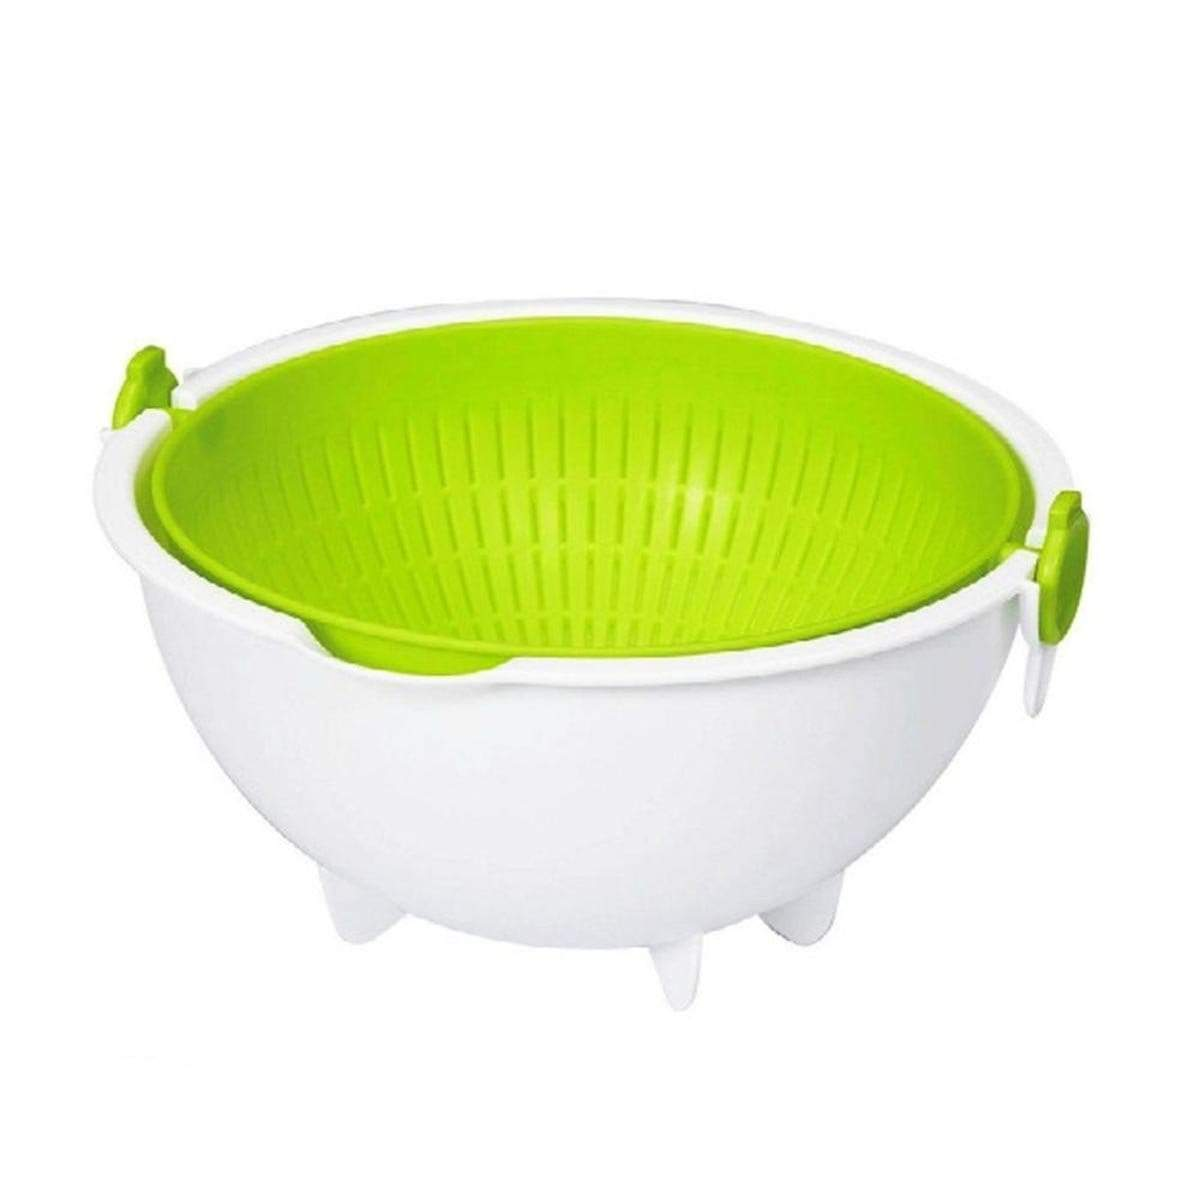 Japanese Plastic Basket Spin Wheel Colander Strainer Large Green KK308